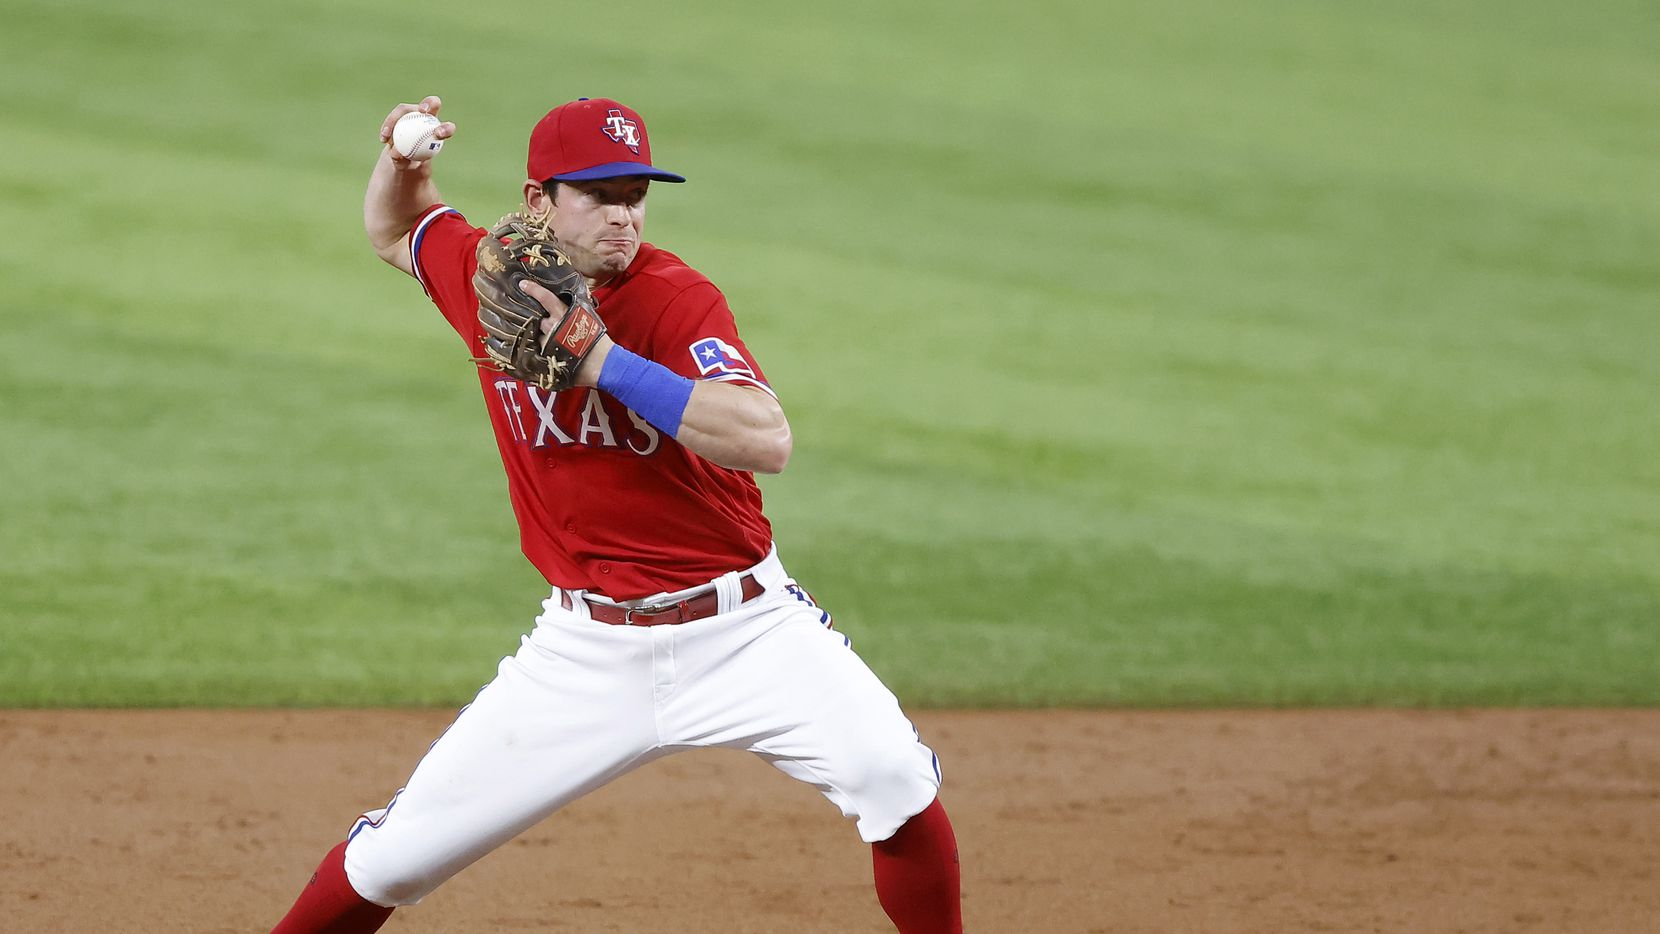 Texas Rangers second baseman Nick Solak (15) turns the front end of a double play attempt against the Houston Astros in the second inning at Globe Life Field in Arlington, Texas, Friday, May 21, 2009. Houston Astros batter Yuli Gurriel was out at second and Yordan Alvarez scored form third.